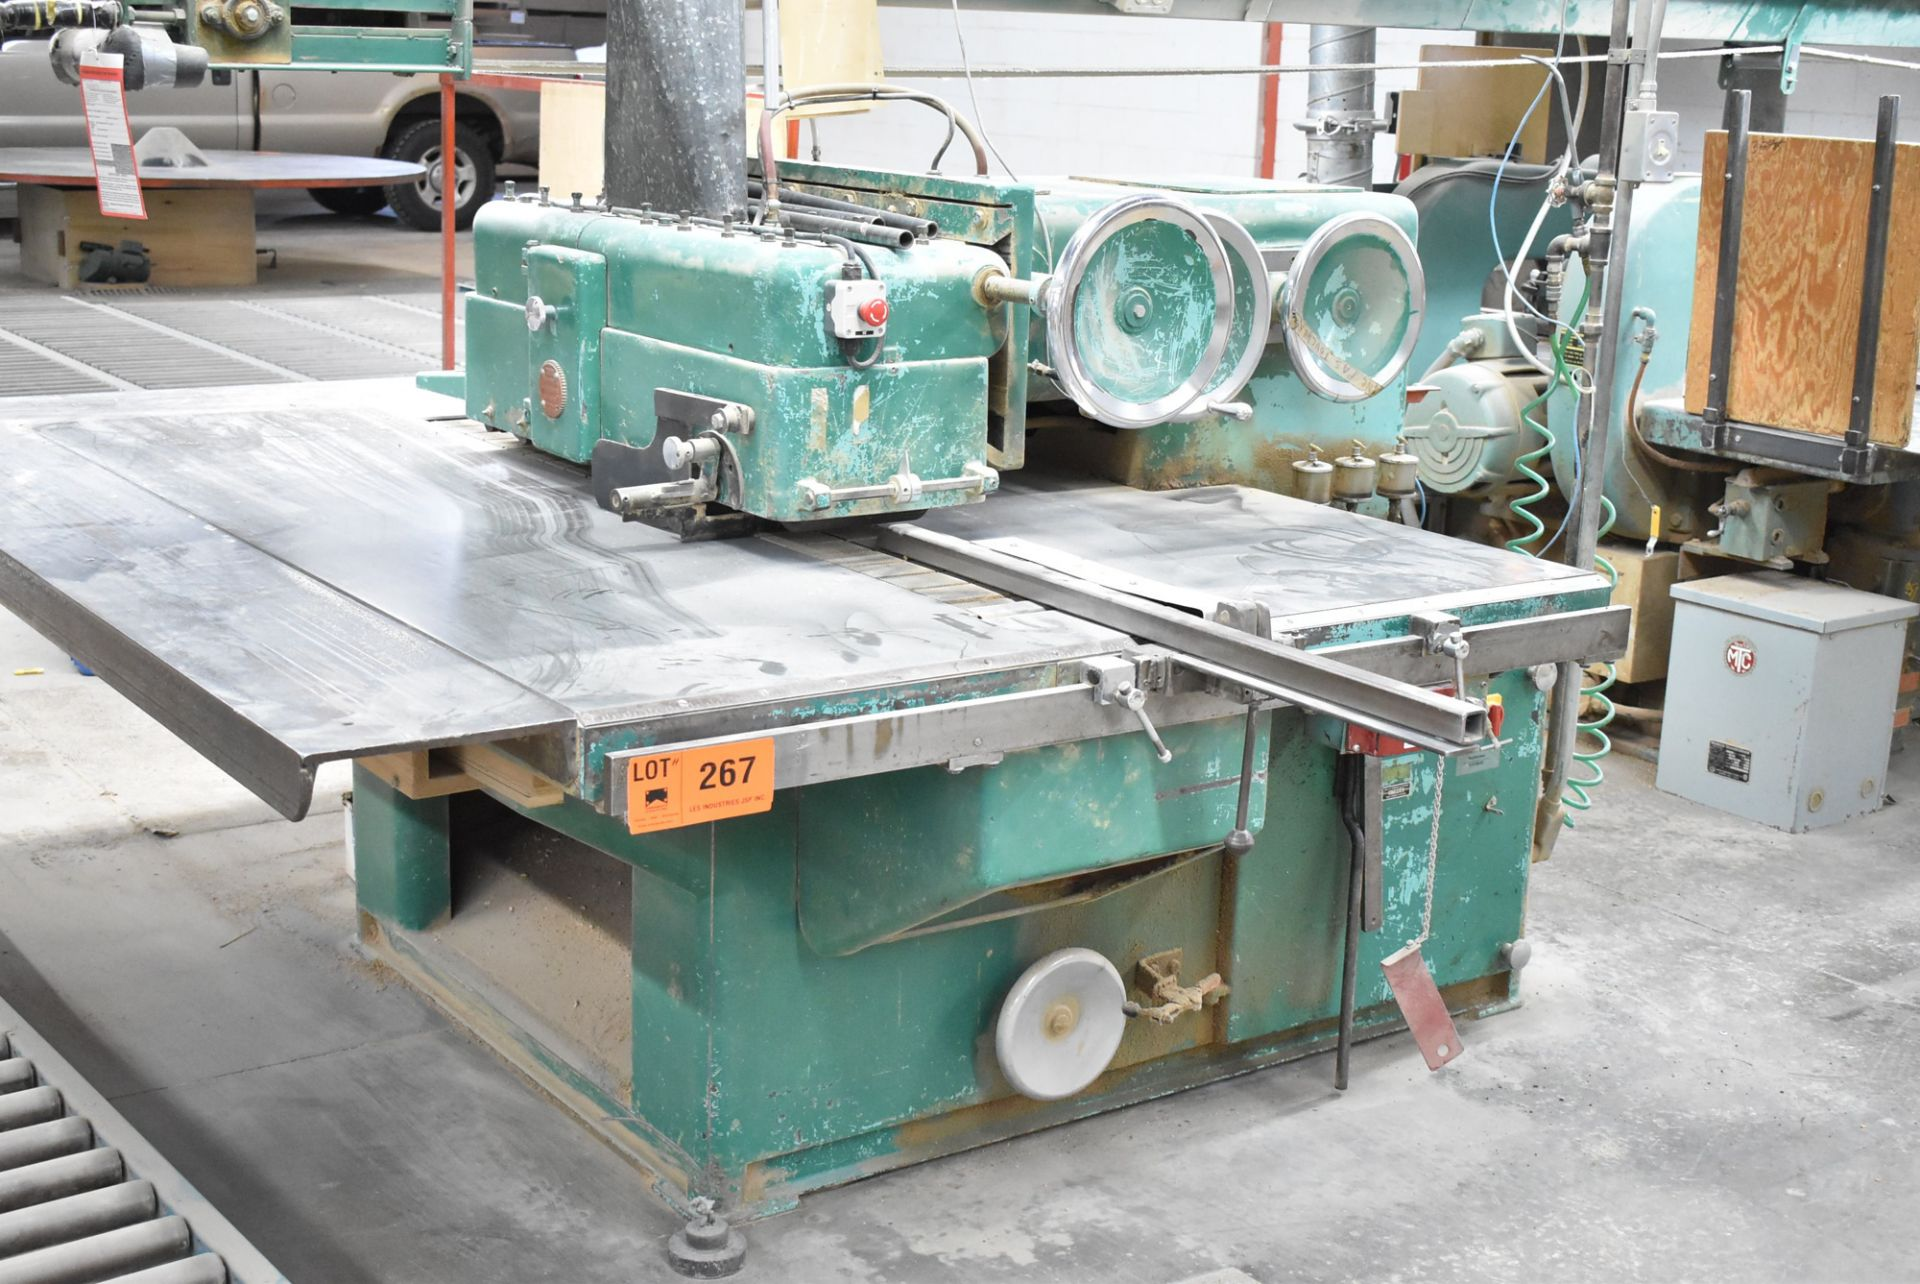 Lot 267 - LACASSE MODEL 69 RIP SAW, S/N: 186 (CI) [RIGGING FEES FOR LOT #267 - $750 CDN PLUS APPLICABLE